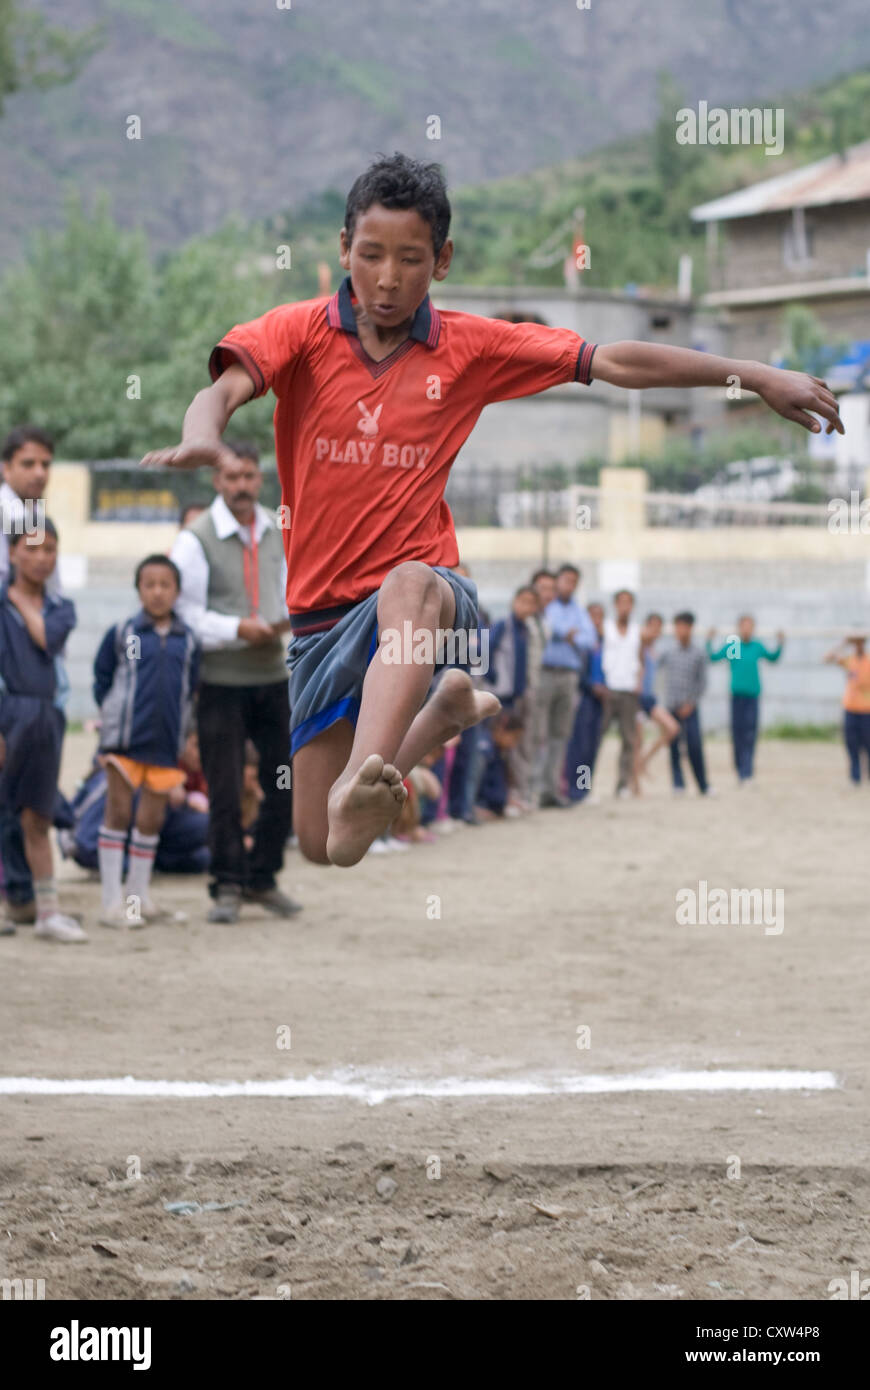 A competitor in the Long jump at a schools' sports event in Keylong, North India - Stock Image